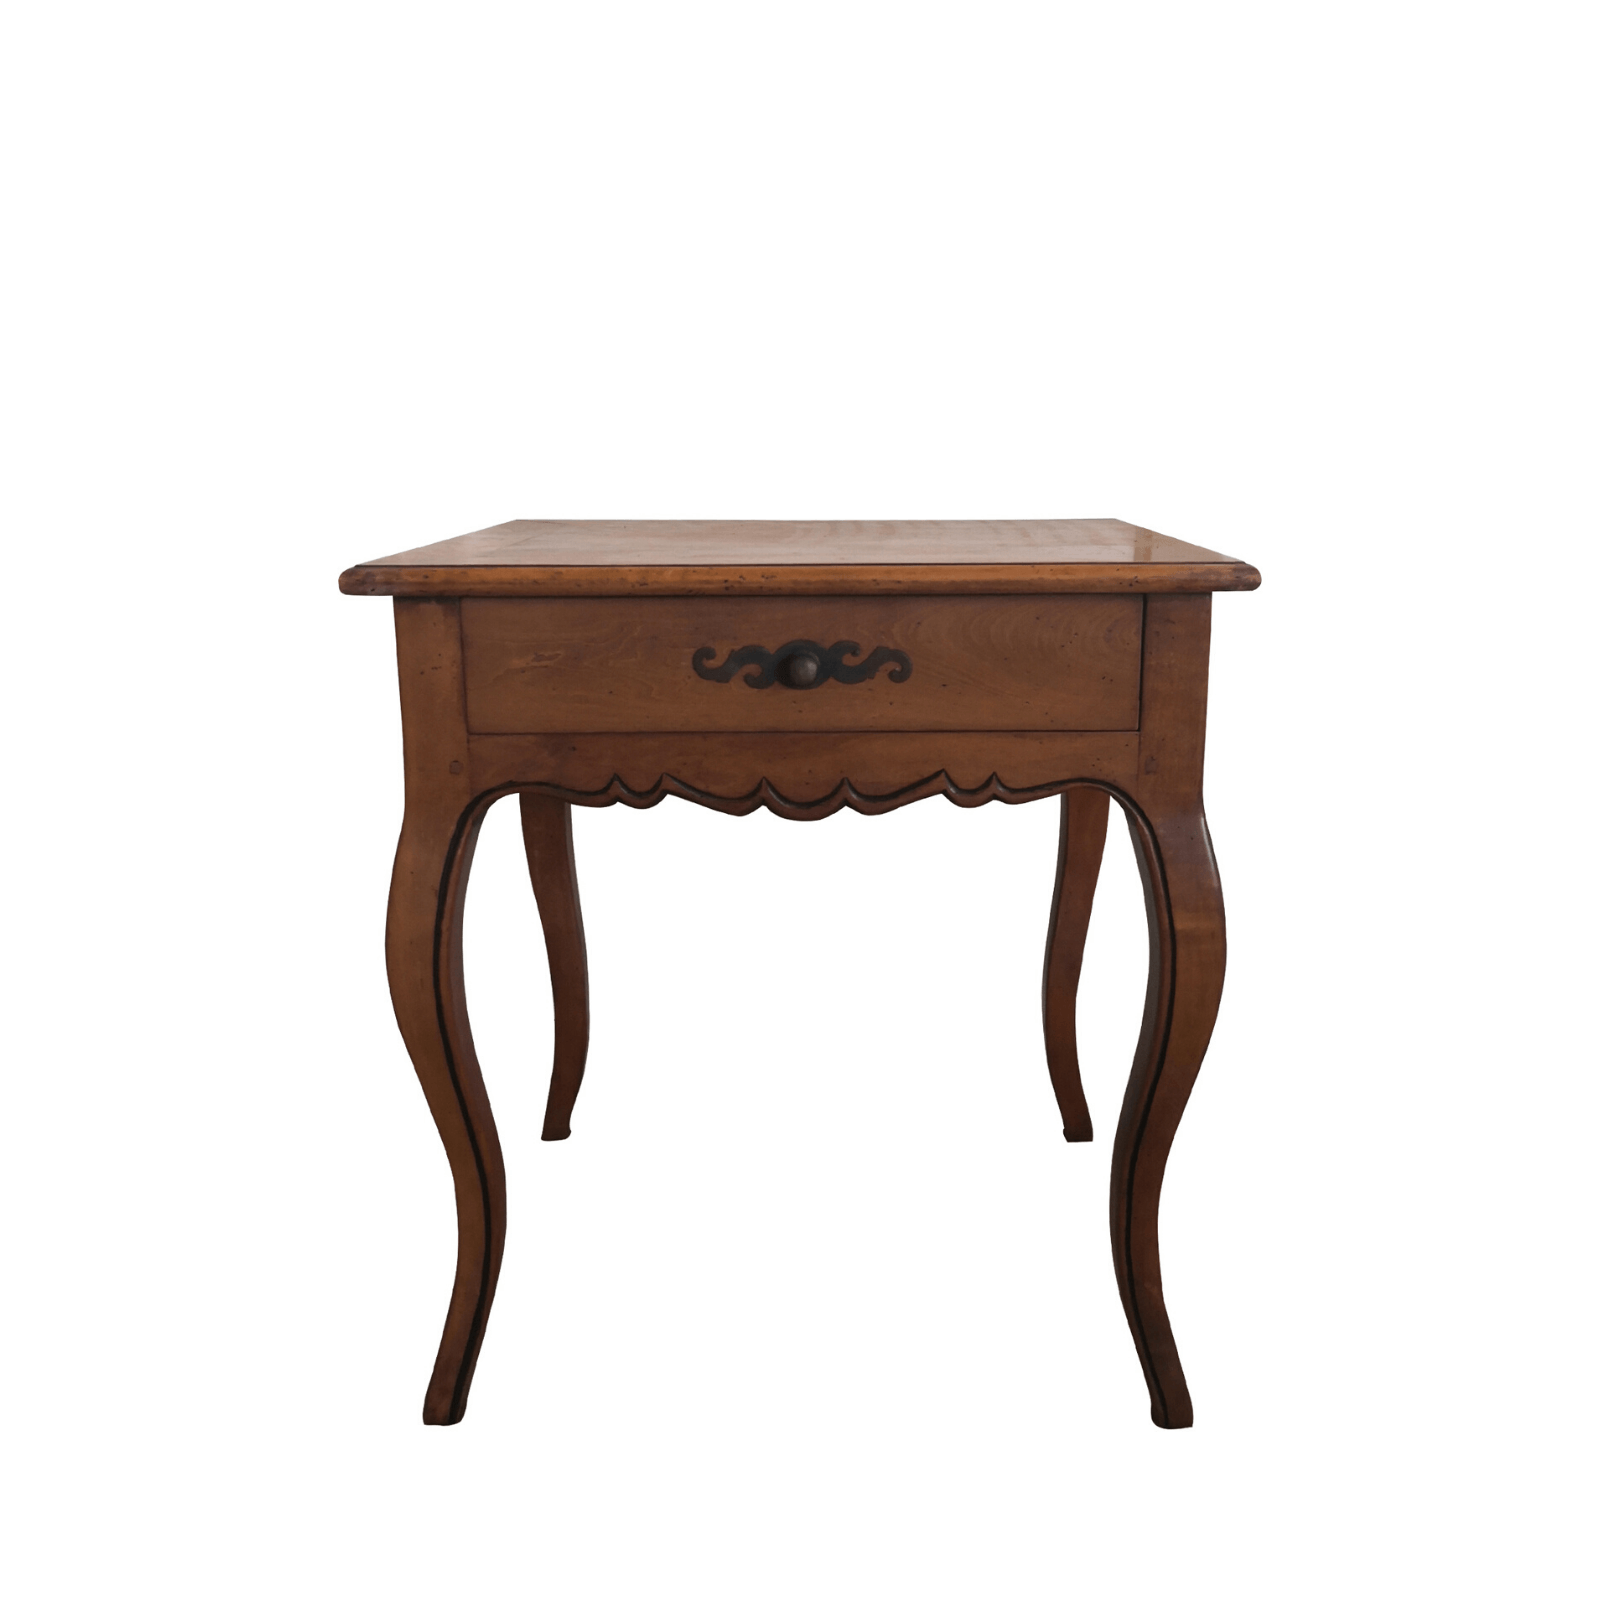 Two Design Lovers antique side table